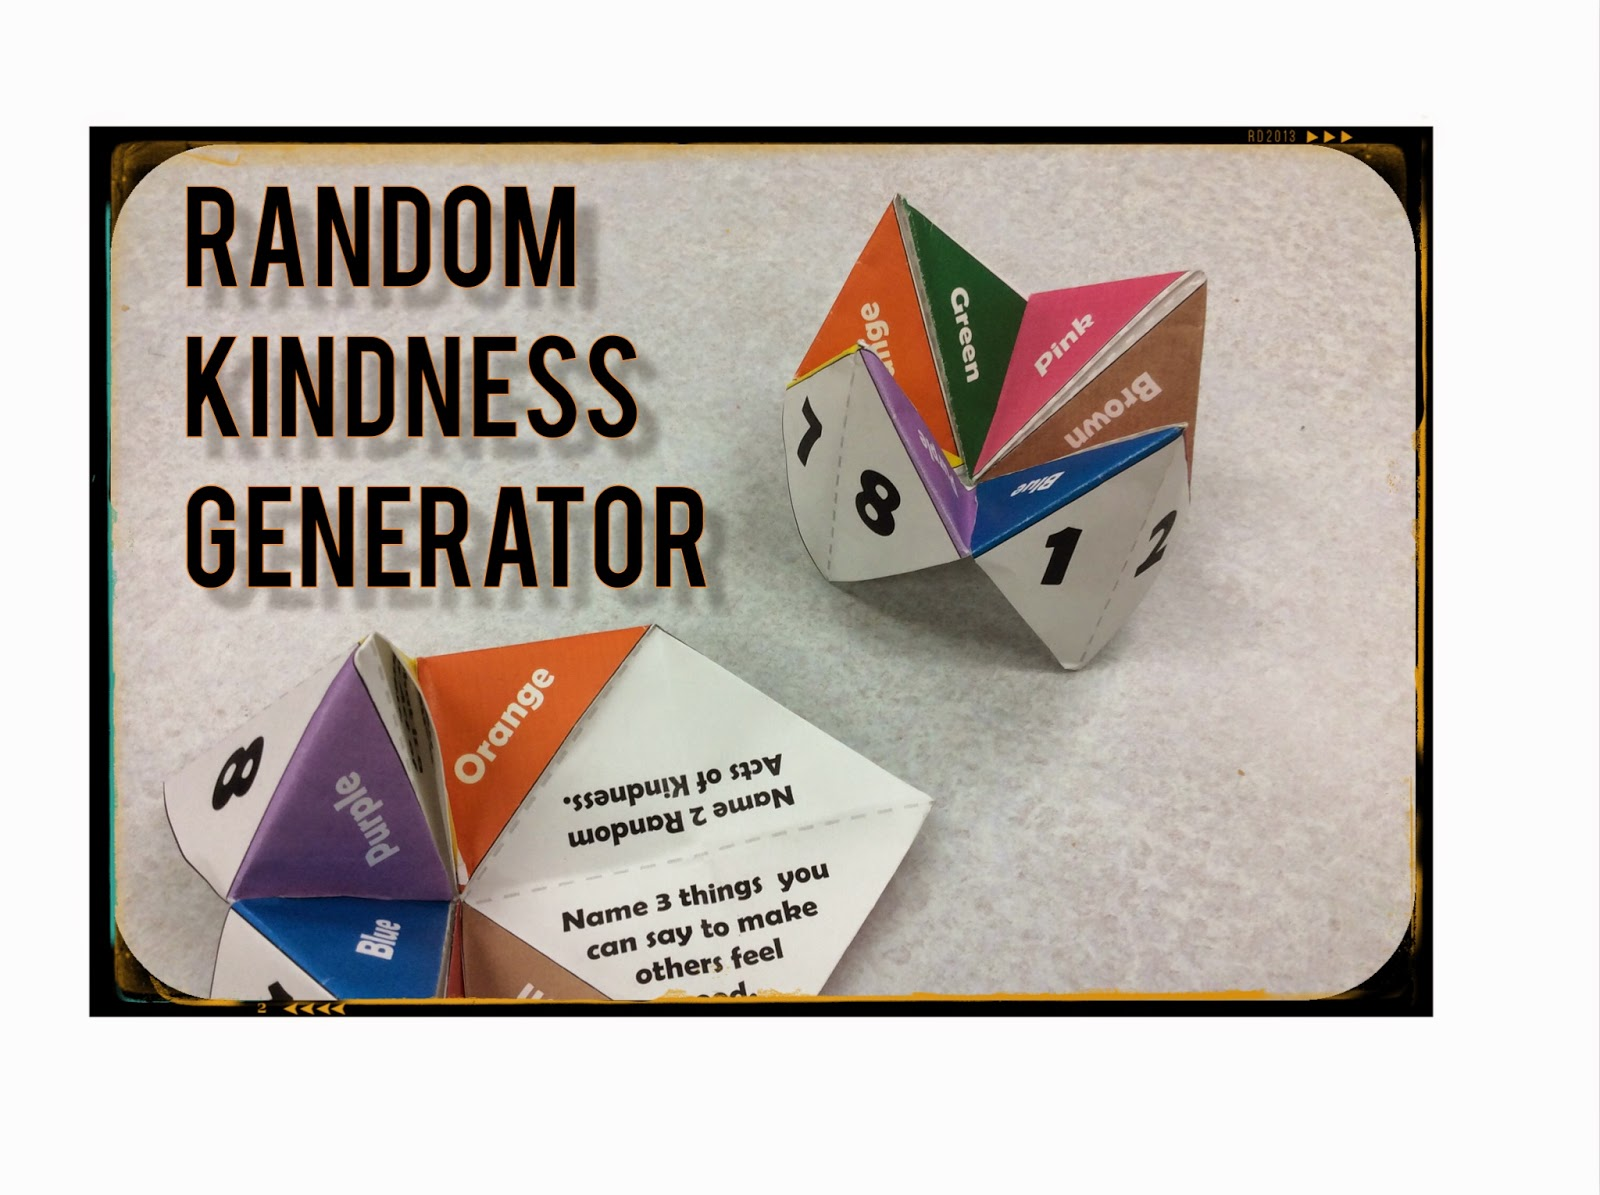 Random Kindness Generator - The Middle School Counselor